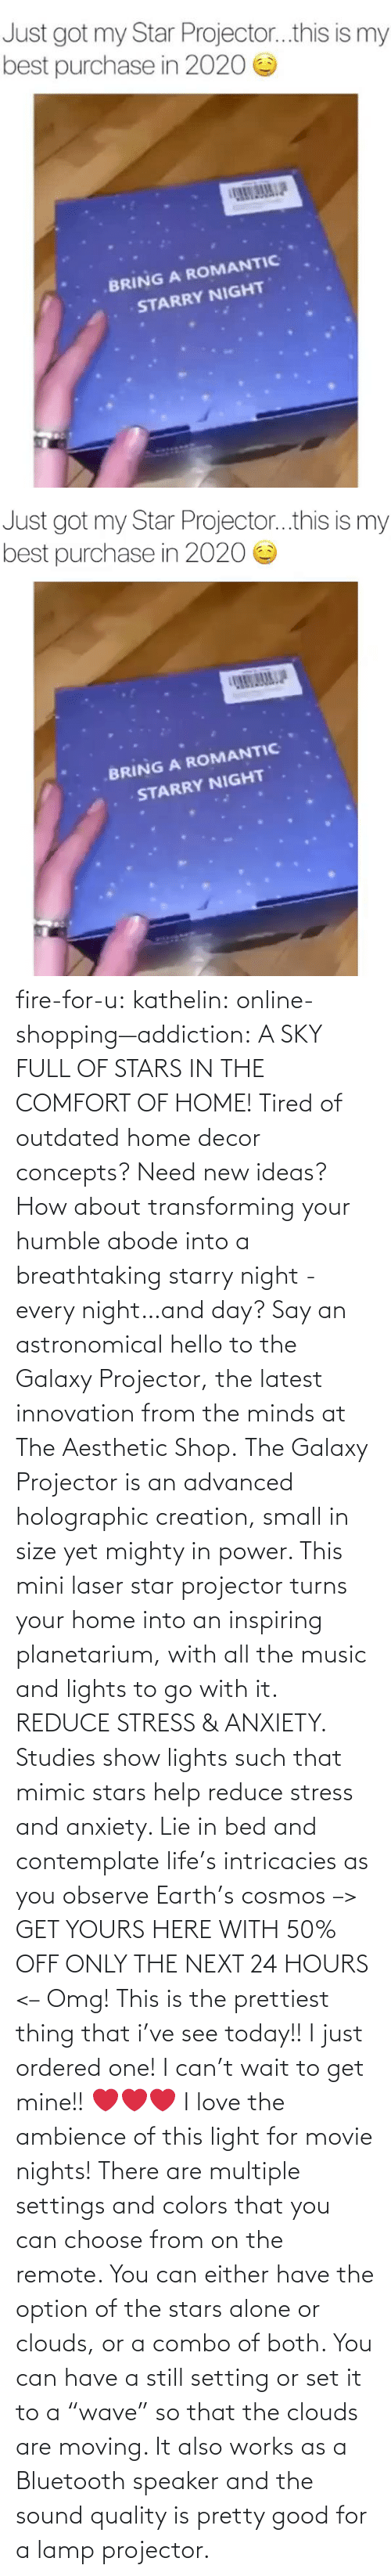 "Anxiety: fire-for-u:  kathelin: online-shopping—addiction:  A SKY FULL OF STARS IN THE COMFORT OF HOME! Tired of outdated home decor concepts? Need new ideas? How about transforming your humble abode into a breathtaking starry night - every night…and day? Say an astronomical hello to the Galaxy Projector, the latest innovation from the minds at The Aesthetic Shop. The Galaxy Projector is an advanced holographic creation, small in size yet mighty in power. This mini laser star projector turns your home into an inspiring planetarium, with all the music and lights to go with it. REDUCE STRESS & ANXIETY. Studies show lights such that mimic stars help reduce stress and anxiety. Lie in bed and contemplate life's intricacies as you observe Earth's cosmos  –> GET YOURS HERE WITH 50% OFF ONLY THE NEXT 24 HOURS <–   Omg! This is the prettiest thing that i've see today!! I just ordered one! I can't wait to get mine!! ❤️️❤️️❤️️  I love the ambience of this light for movie nights! There are multiple settings and colors that you can choose from on the remote. You can either have the option of the stars alone or clouds, or a combo of both. You can have a still setting or set it to a ""wave"" so that the clouds are moving. It also works as a Bluetooth speaker and the sound quality is pretty good for a lamp projector."